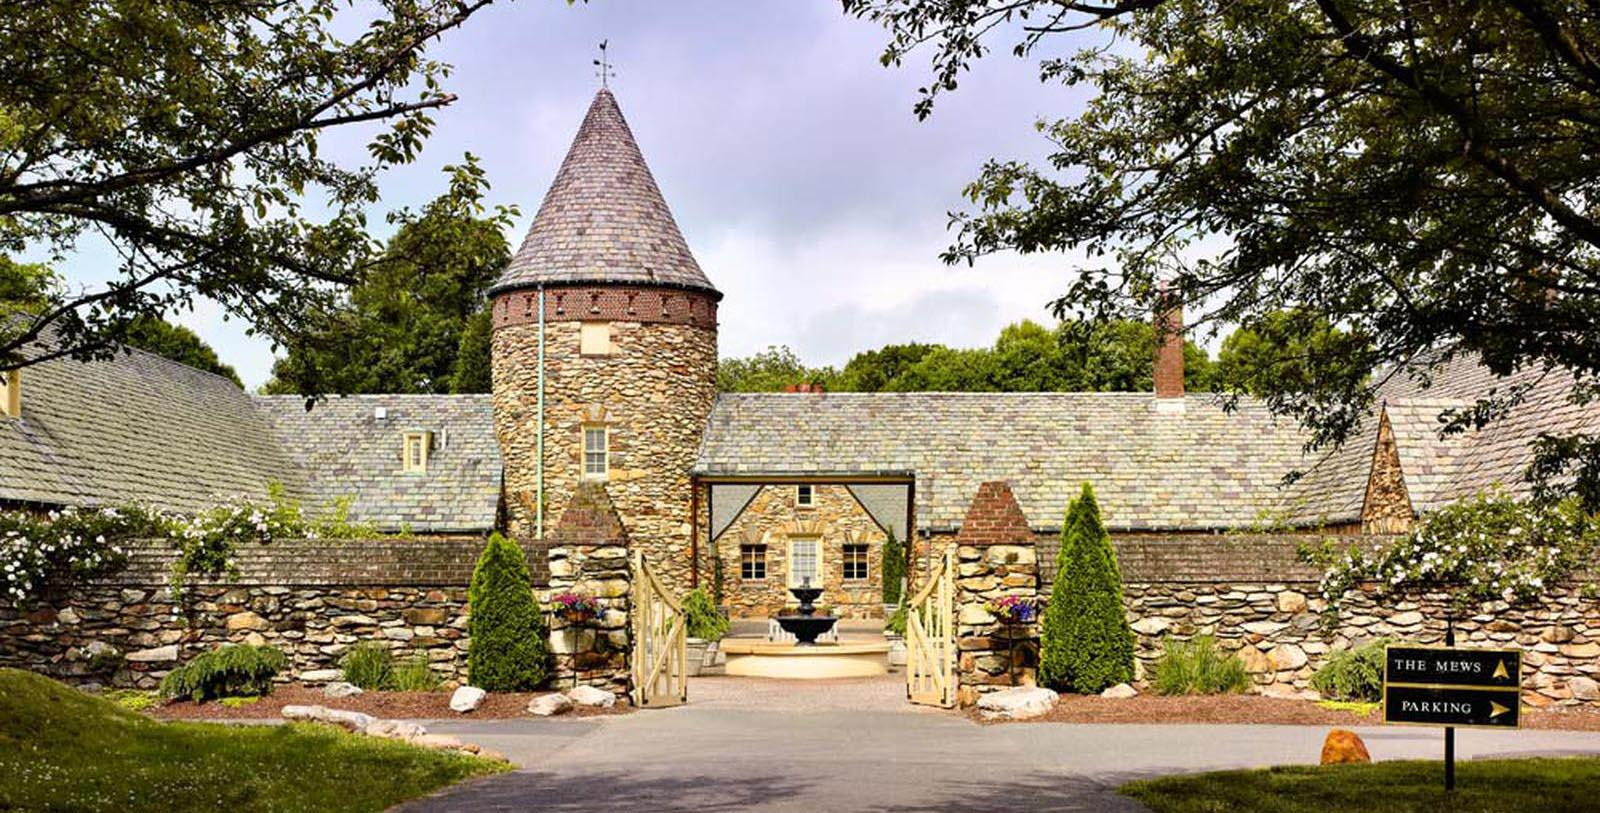 Image of Entrance The Graylyn Estate,1932, Member of Historic Hotels of America, in Winston-Salem, North Carolina, Overview